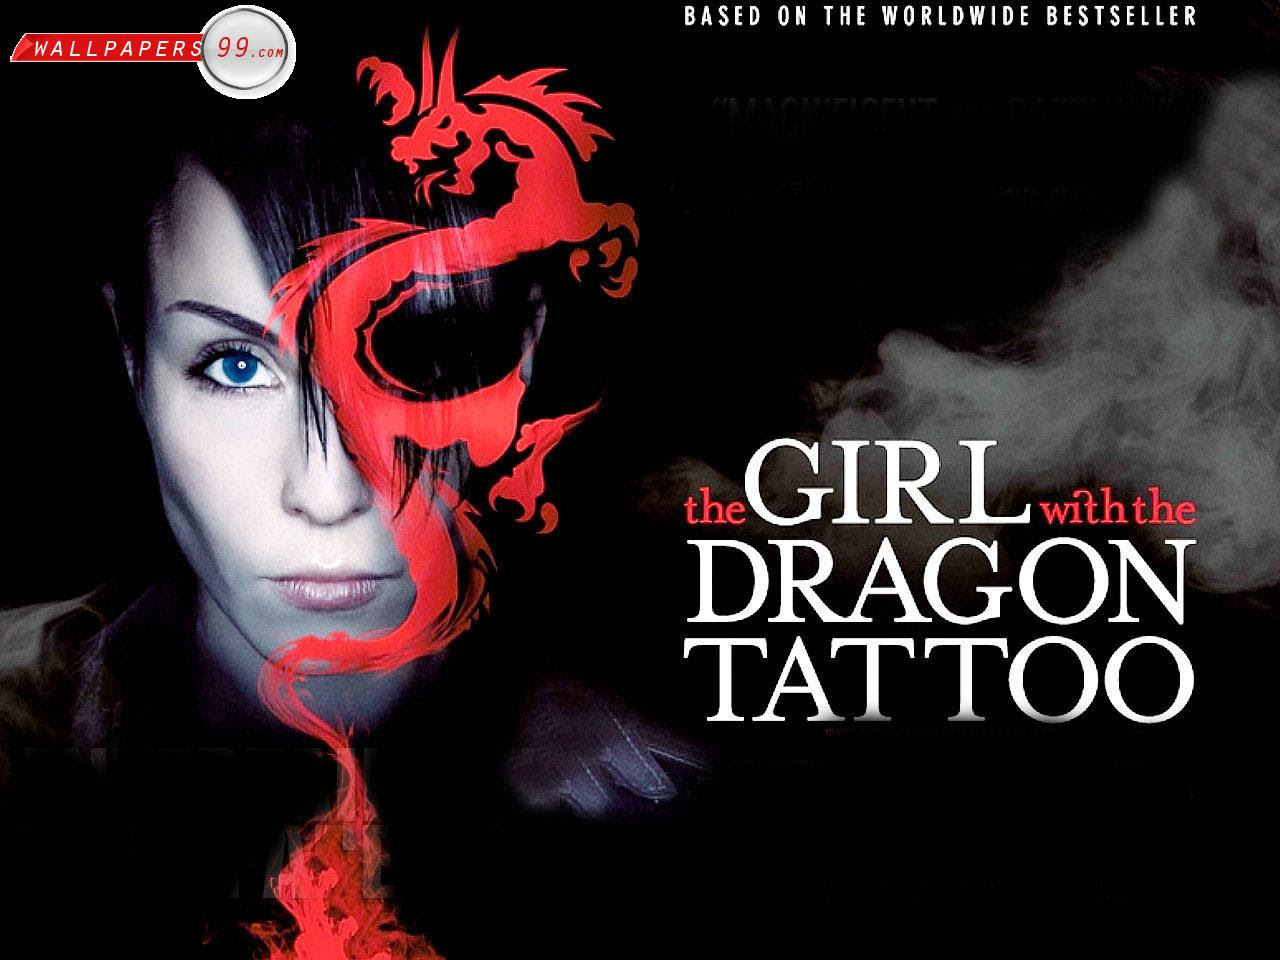 Gwtdt Wallpaper The Girl With The Dragon Tattoo Wallpaper